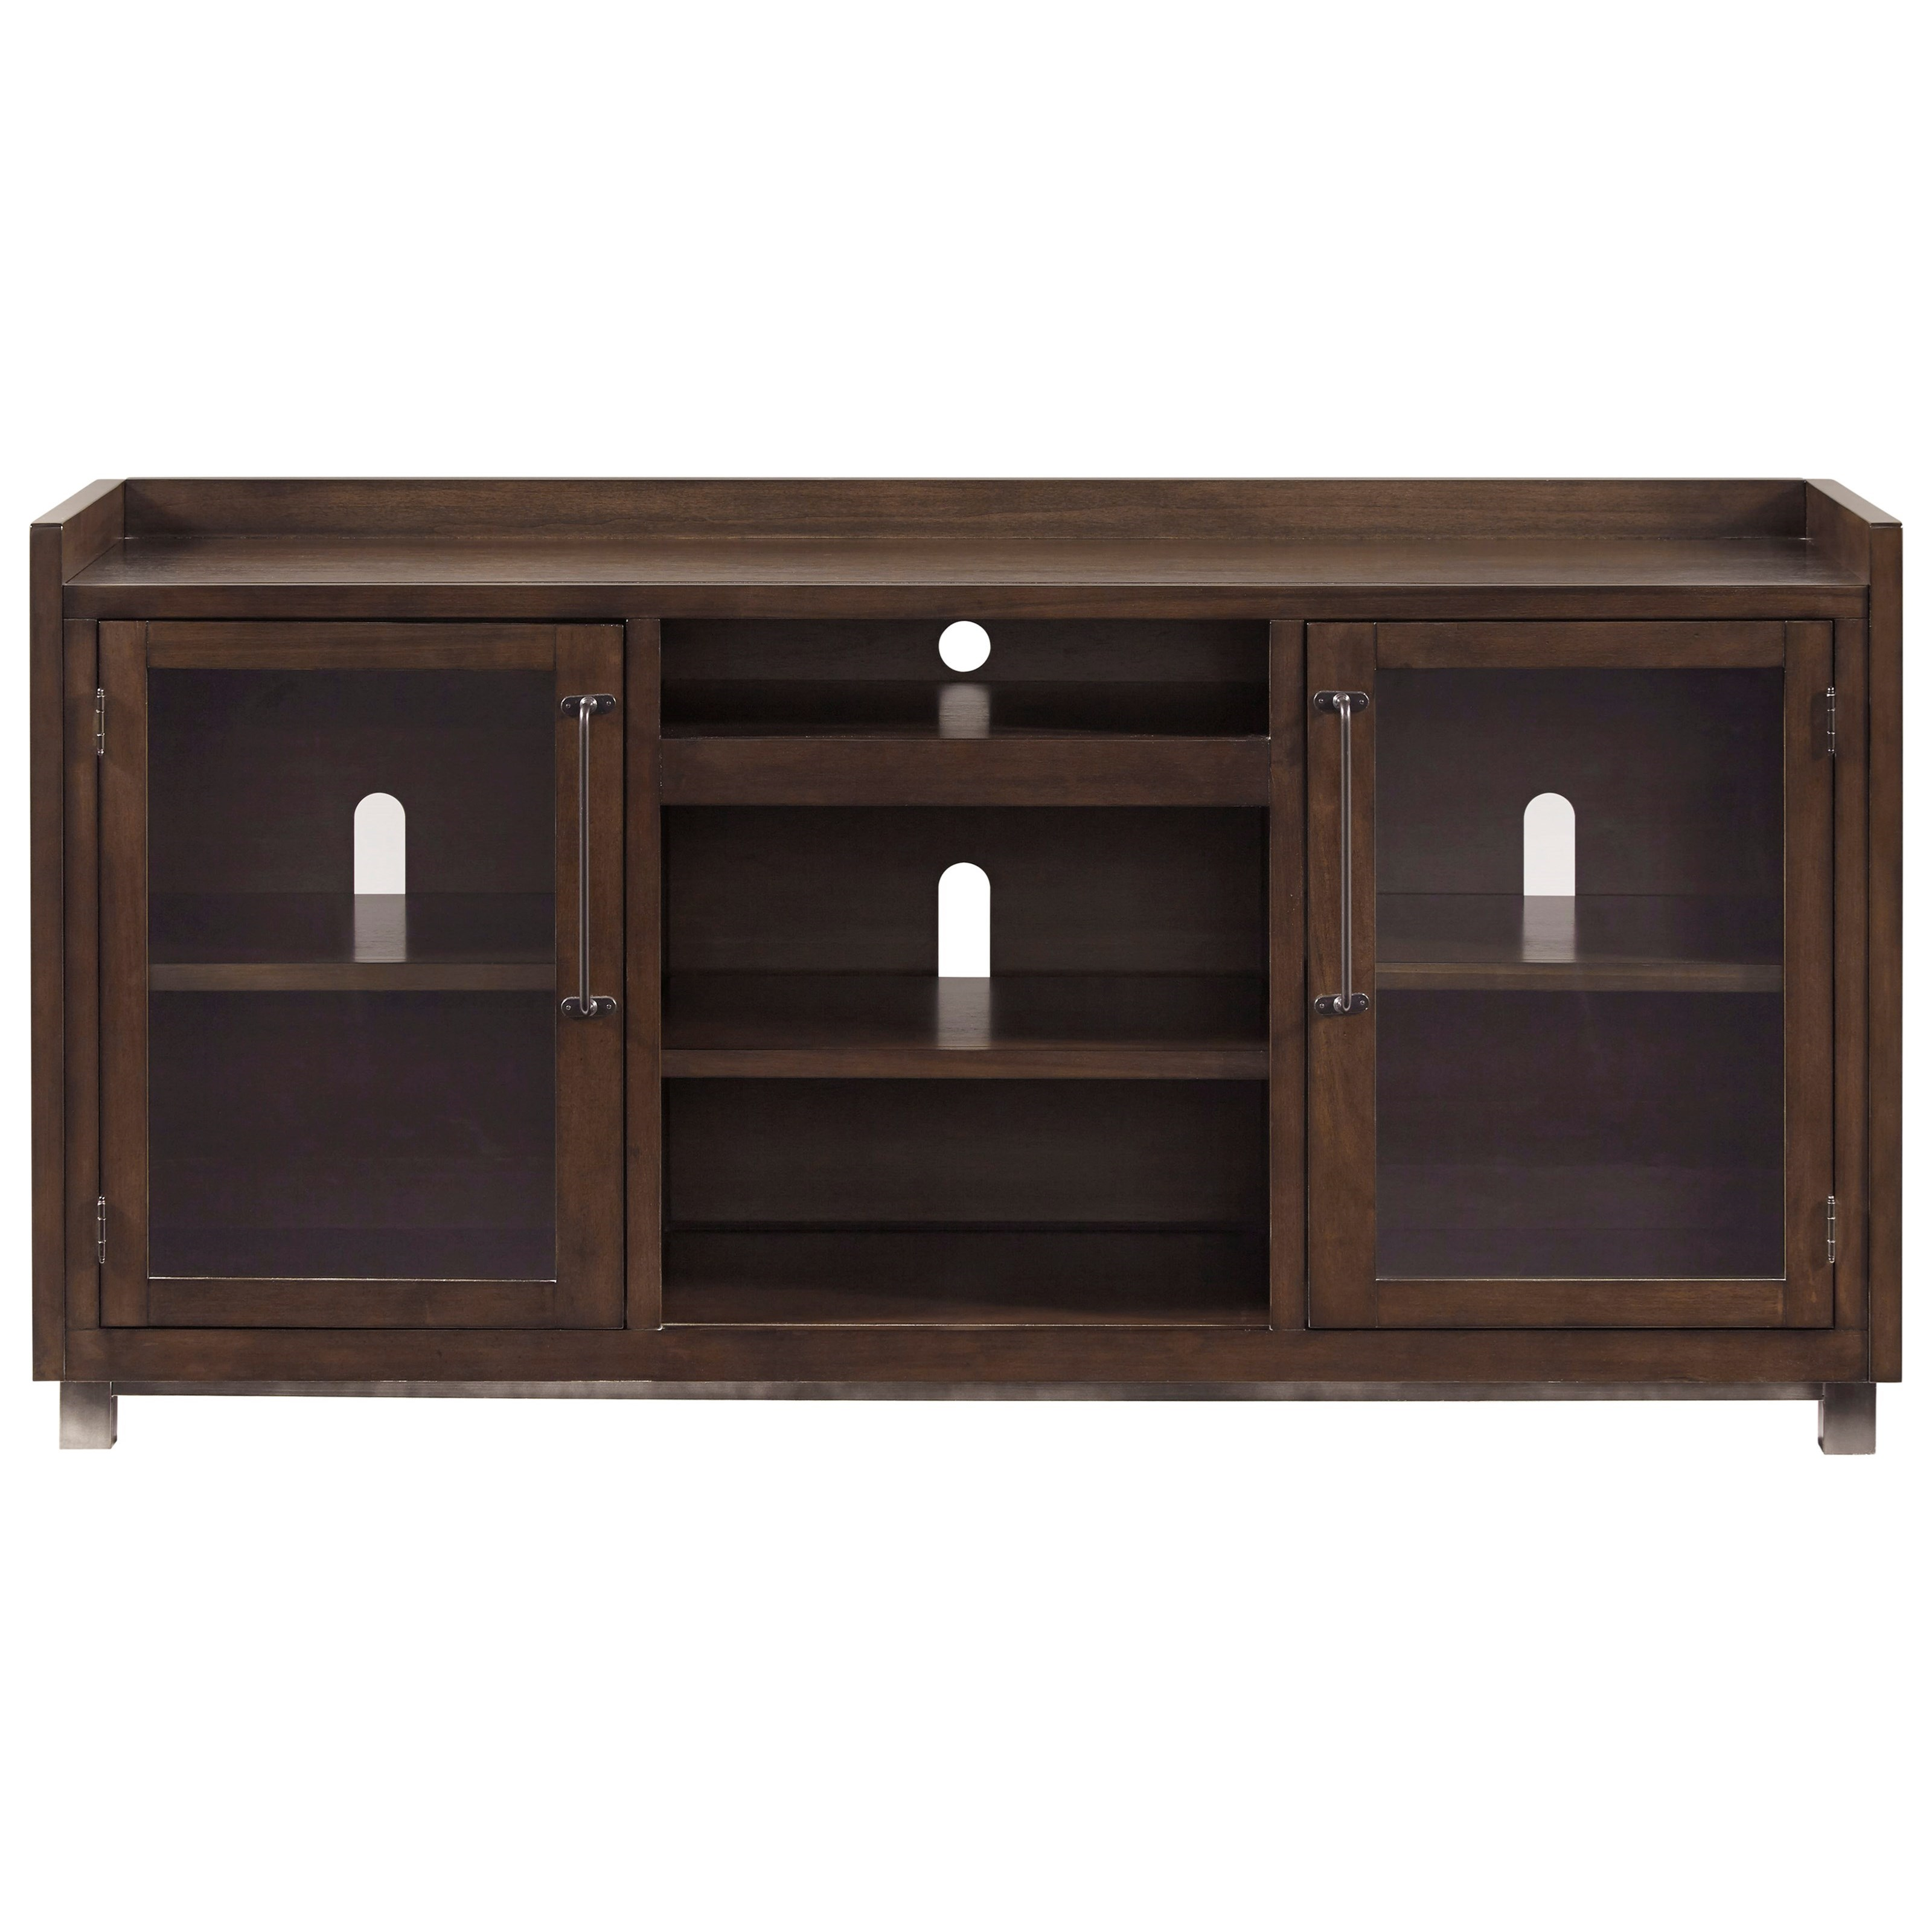 Starmore TV Stand by Signature Design by Ashley at Red Knot